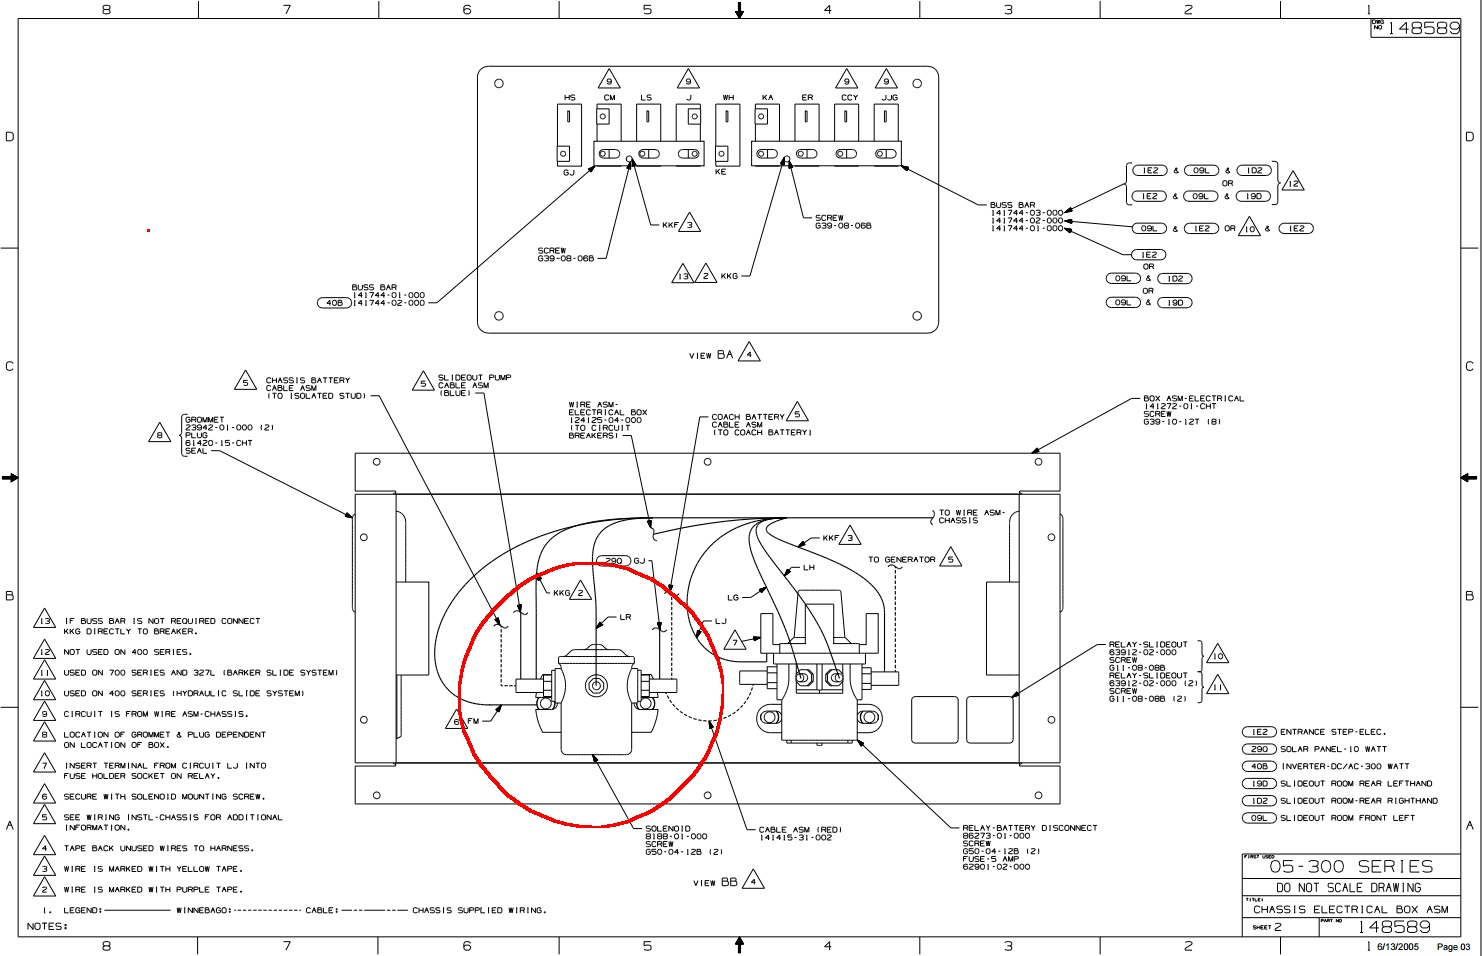 Alternator Not Charging House Battery Irv2 Forums Fleetwood Excursion Wiring Diagram Click Image For Larger Version Name 05 Aspect Relay 2 Views 174